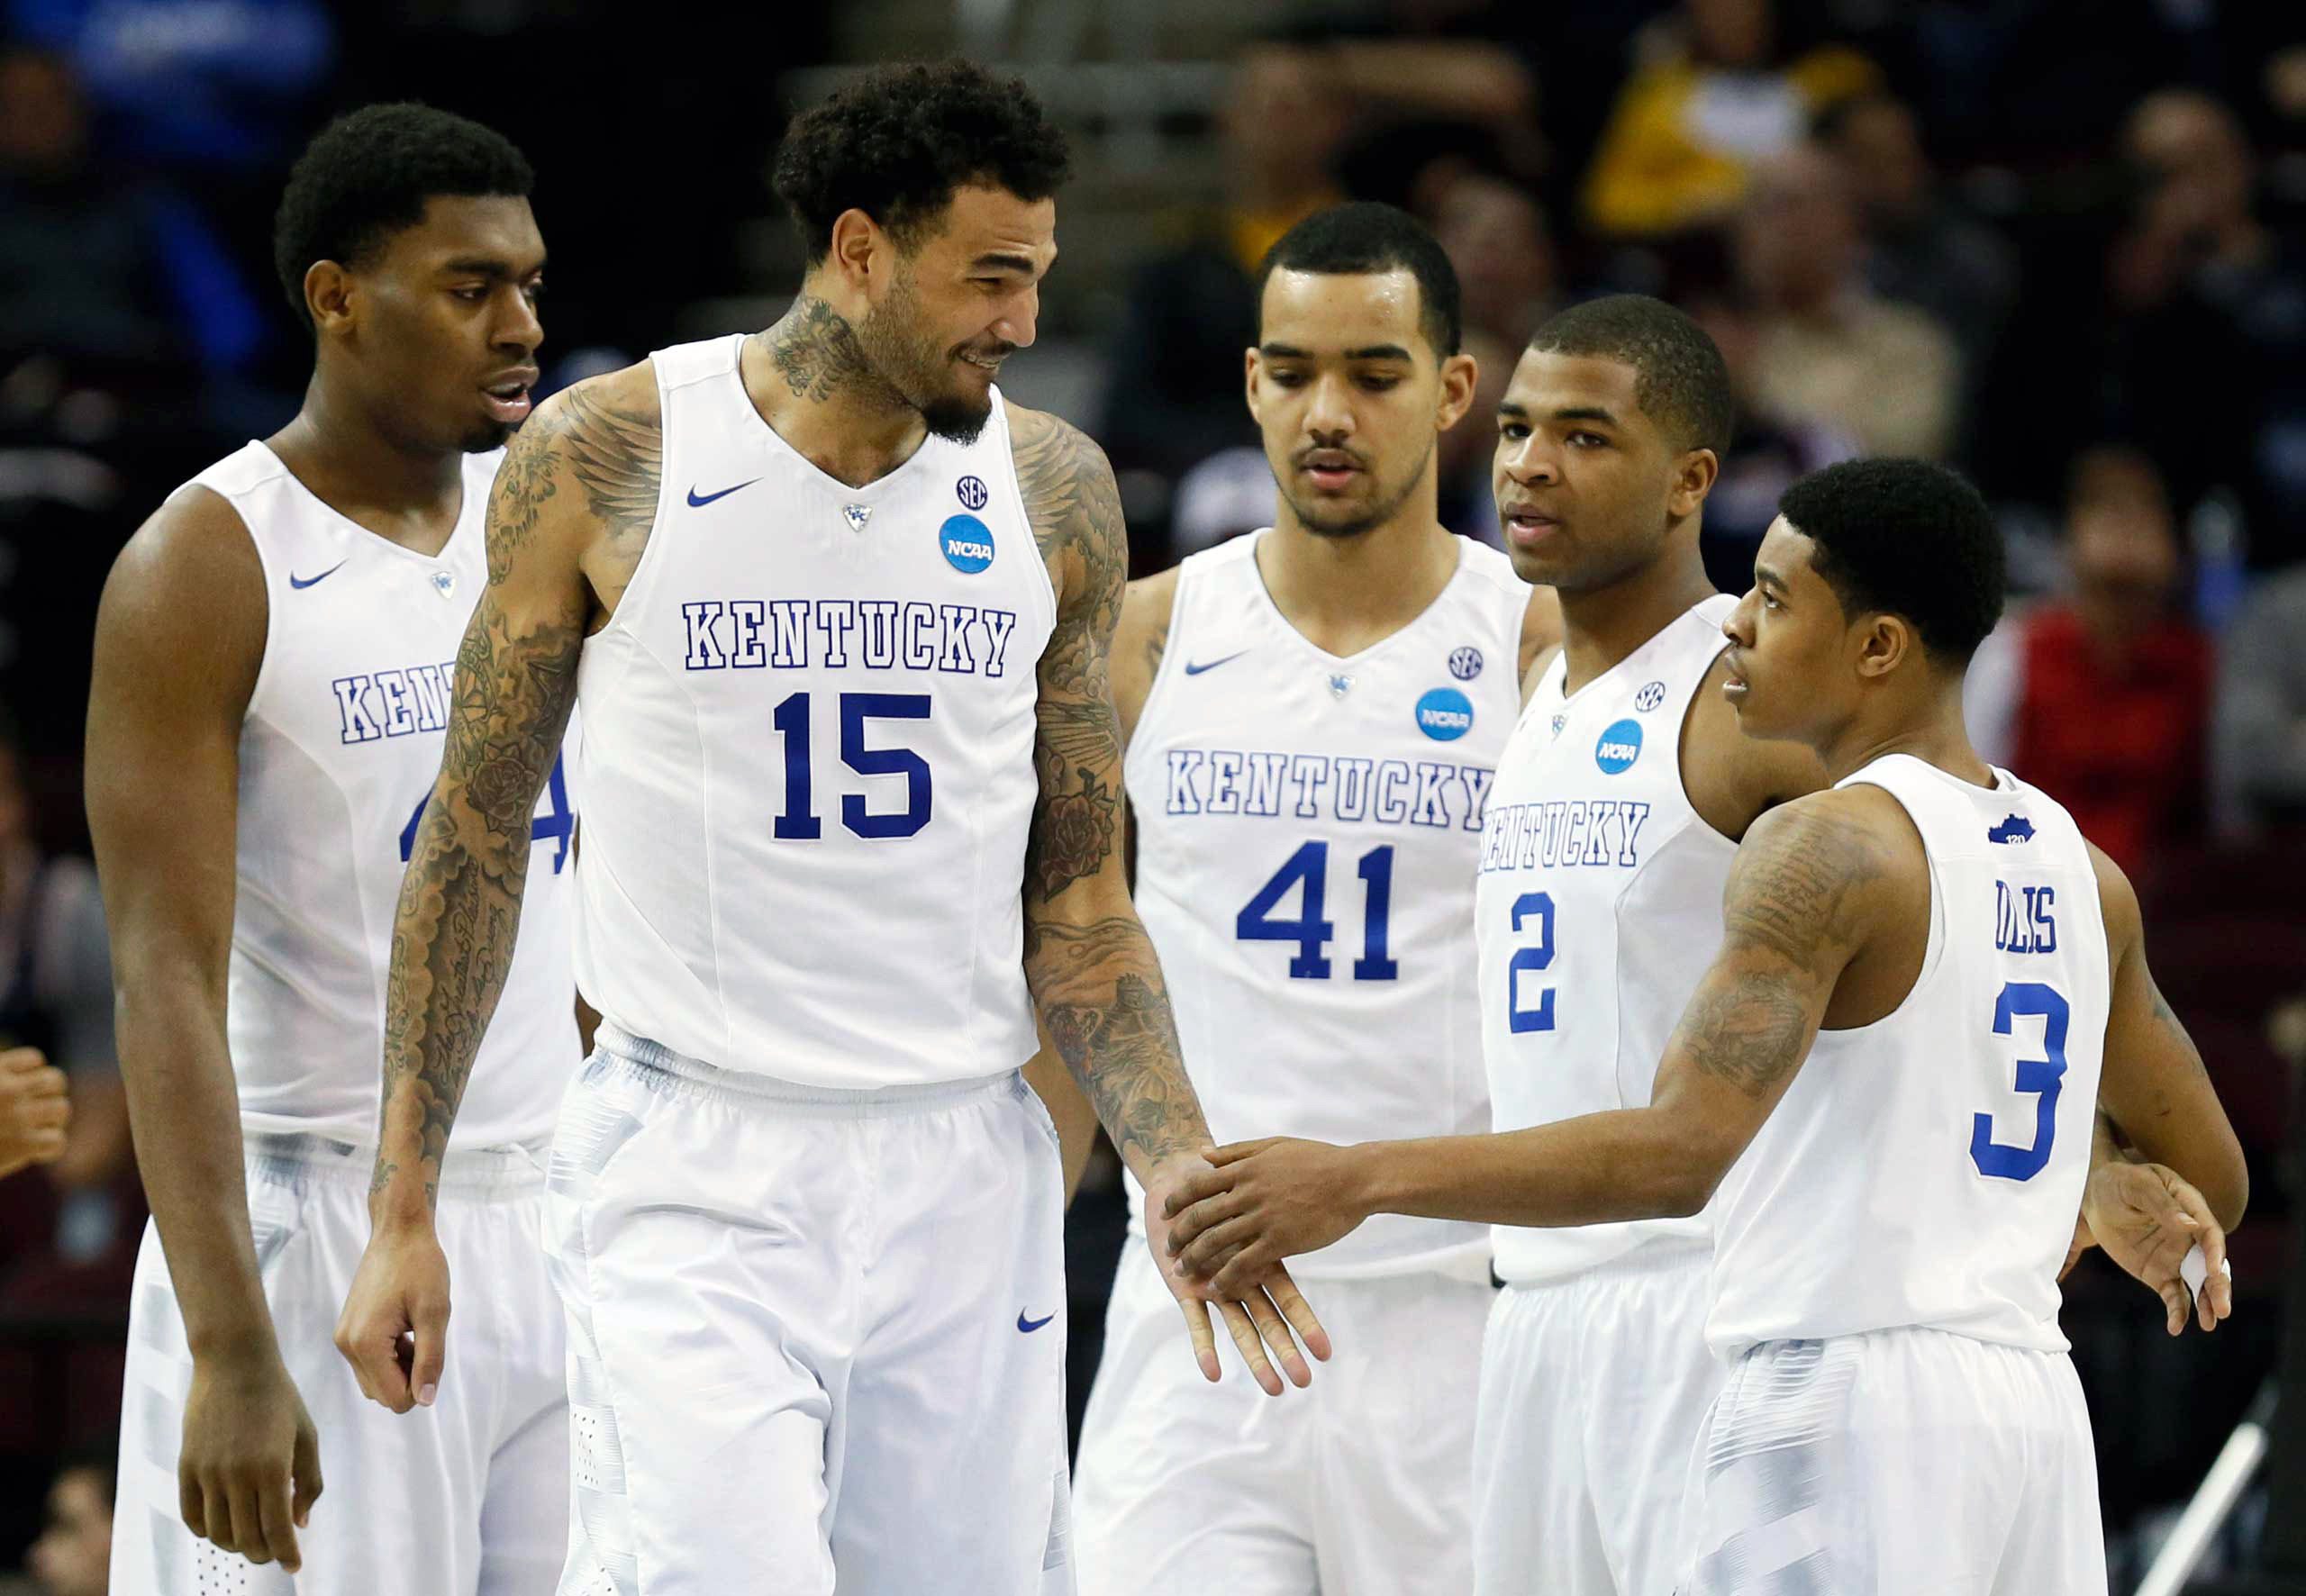 The Kentucky Wildcats won against the West Virginia Mountaineers in the semifinals of the midwest regional of the 2015 NCAA Tournament at Quicken Loans Arena in Cleveland on March 26, 2015.